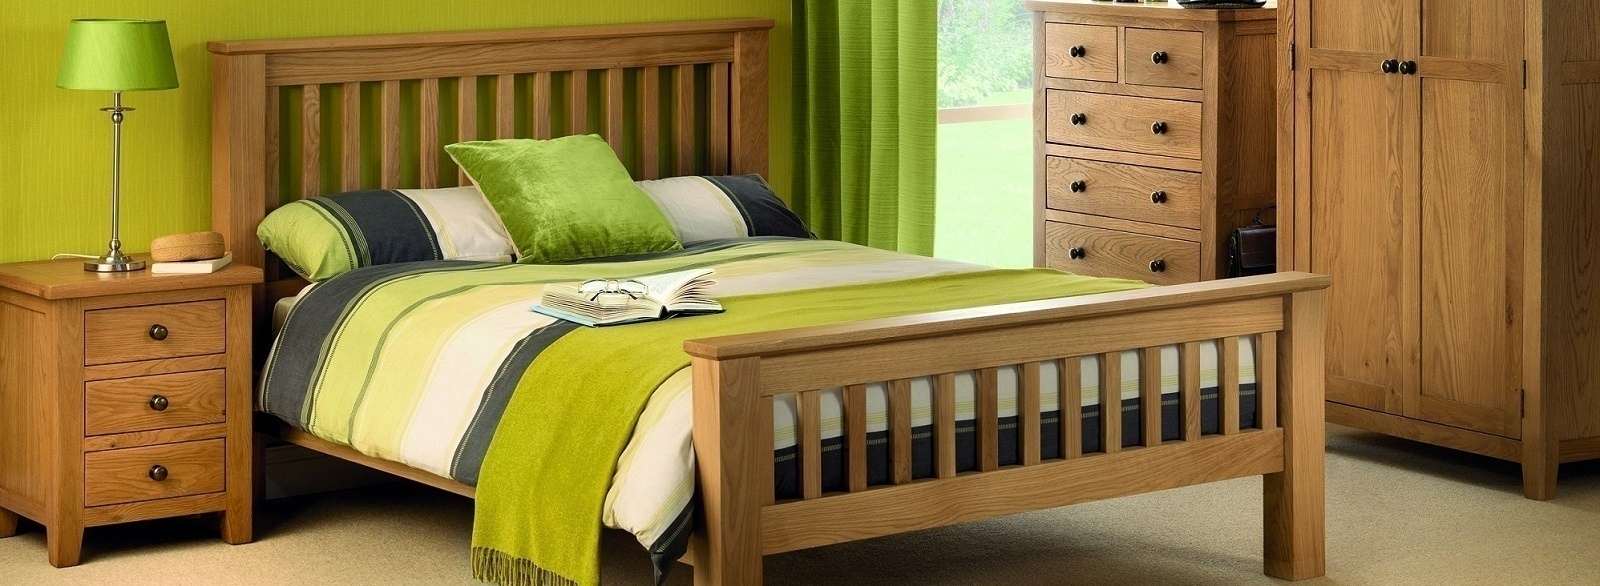 Top White Oak Bedroom Furniture 600 x 400 · 28 kB · jpeg